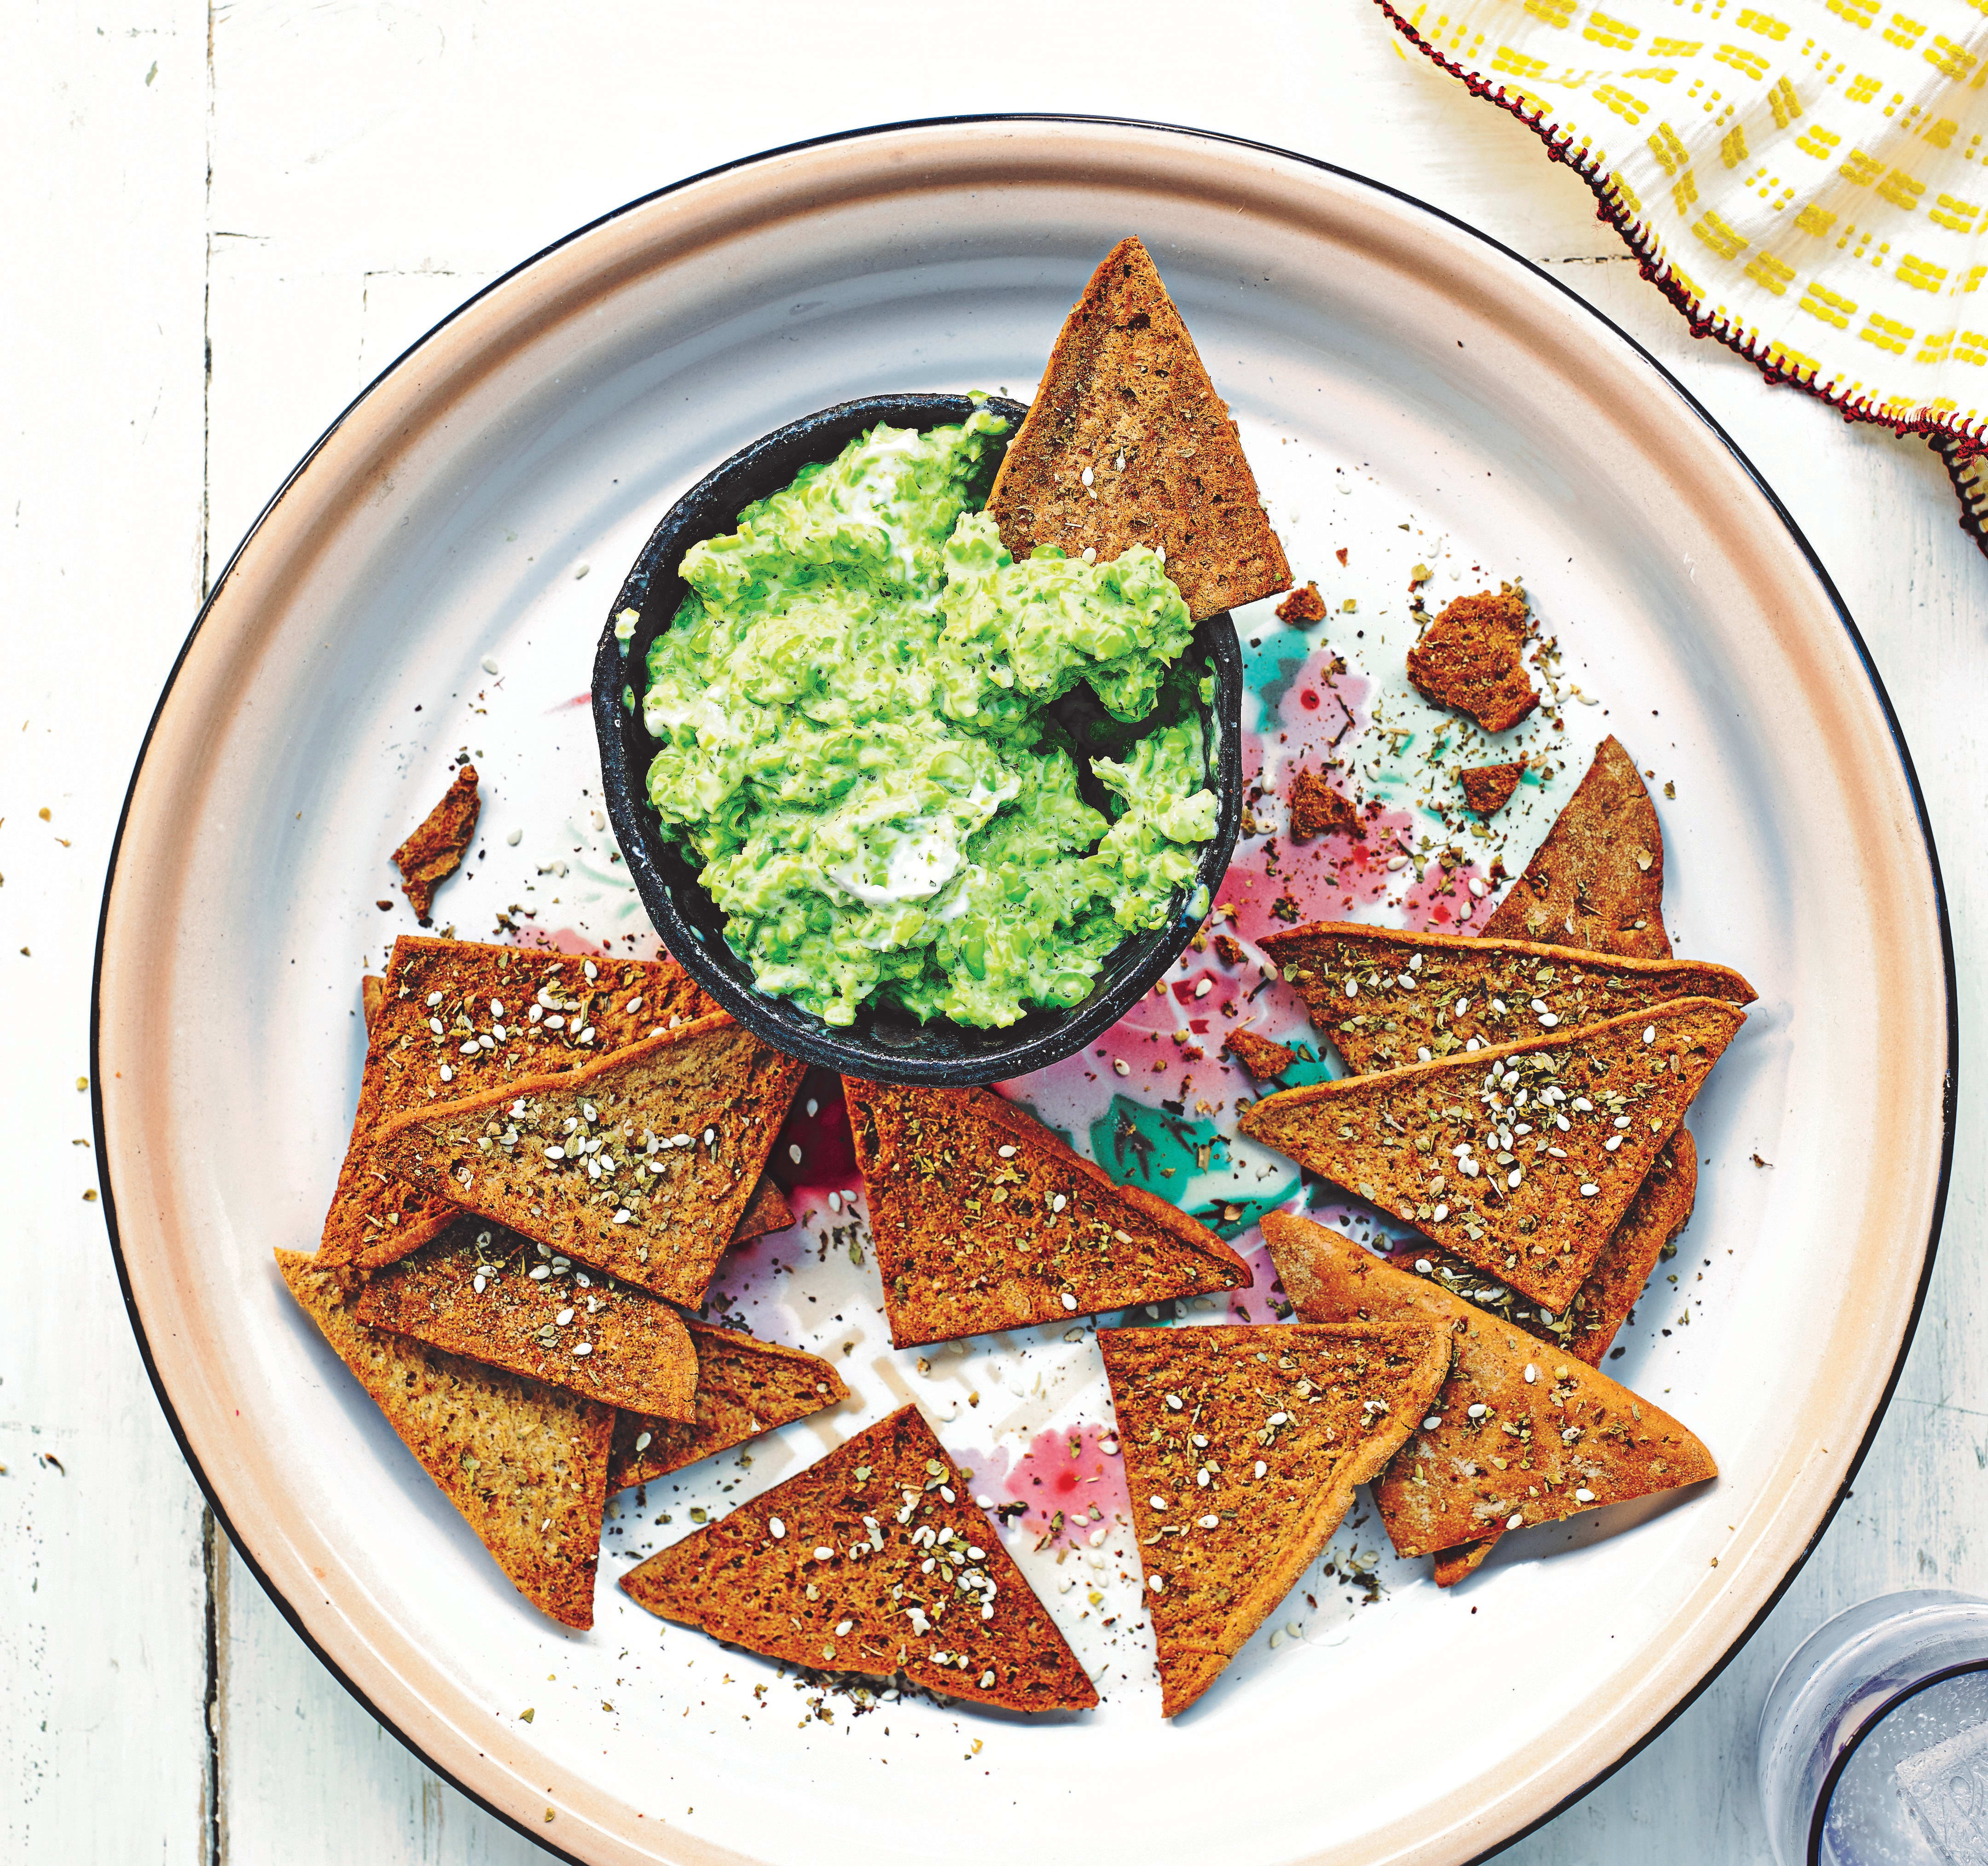 Photo of Pea & mint dip with melba toasts by WW